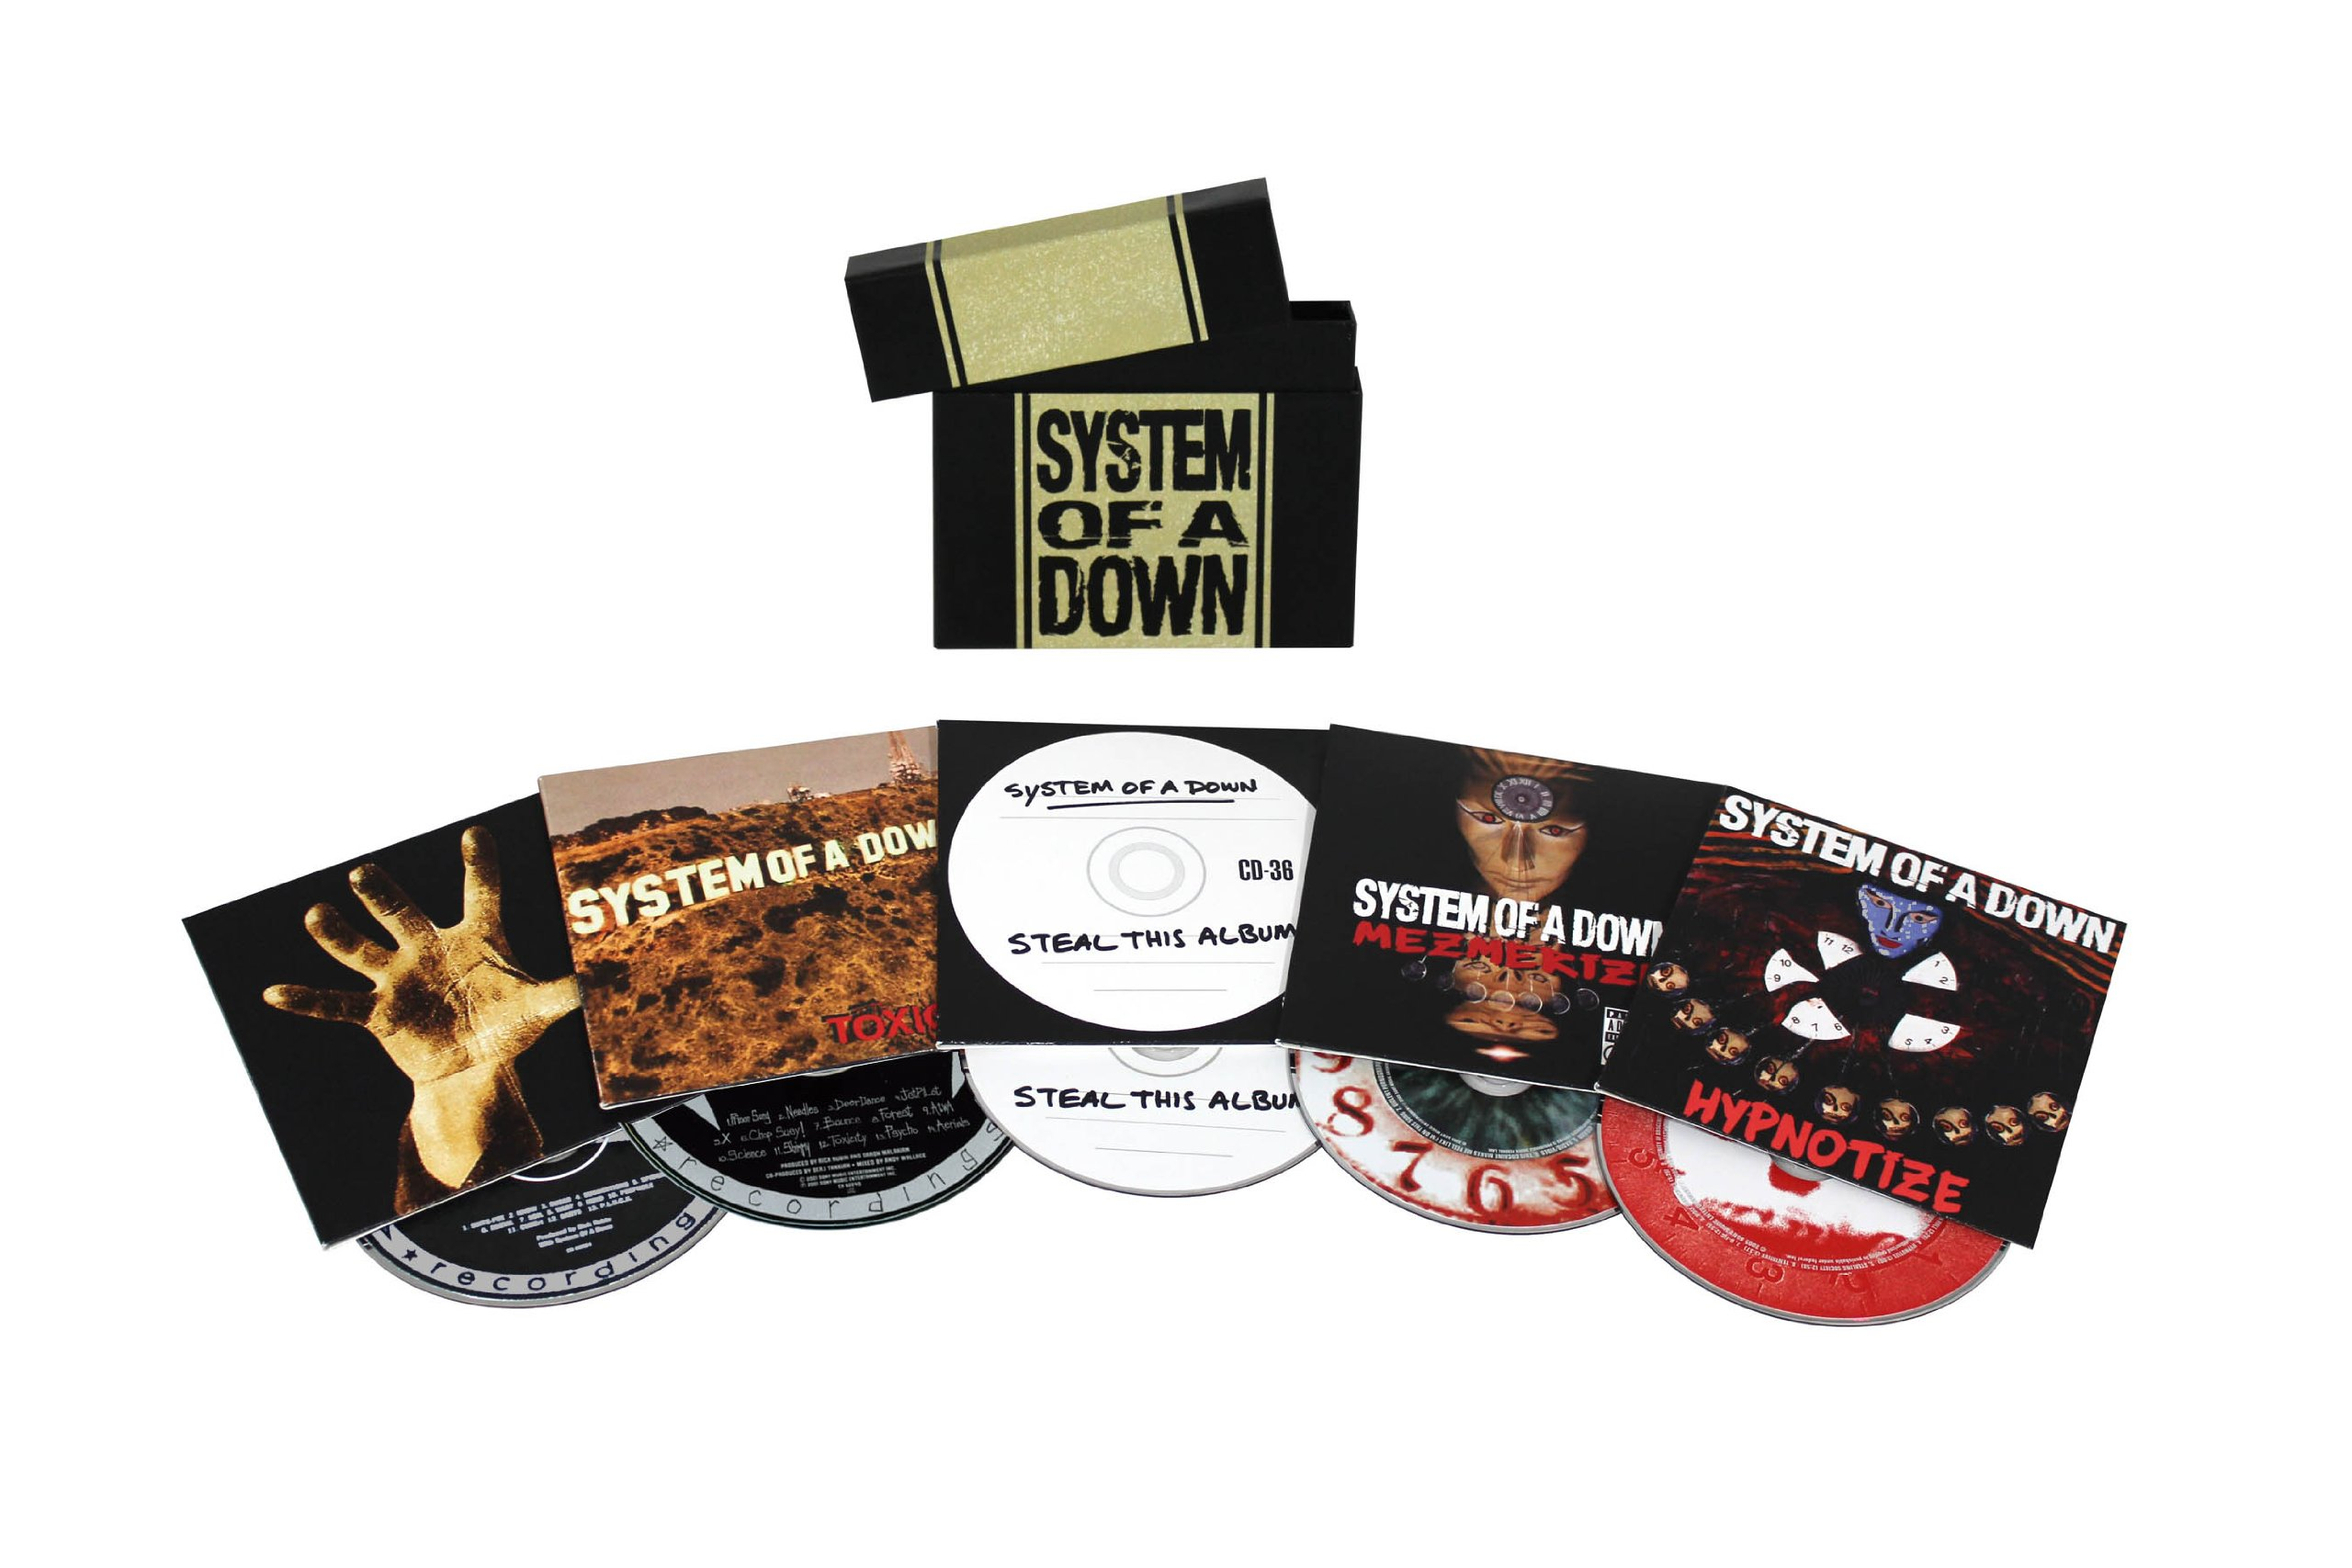 System of a Down by CD